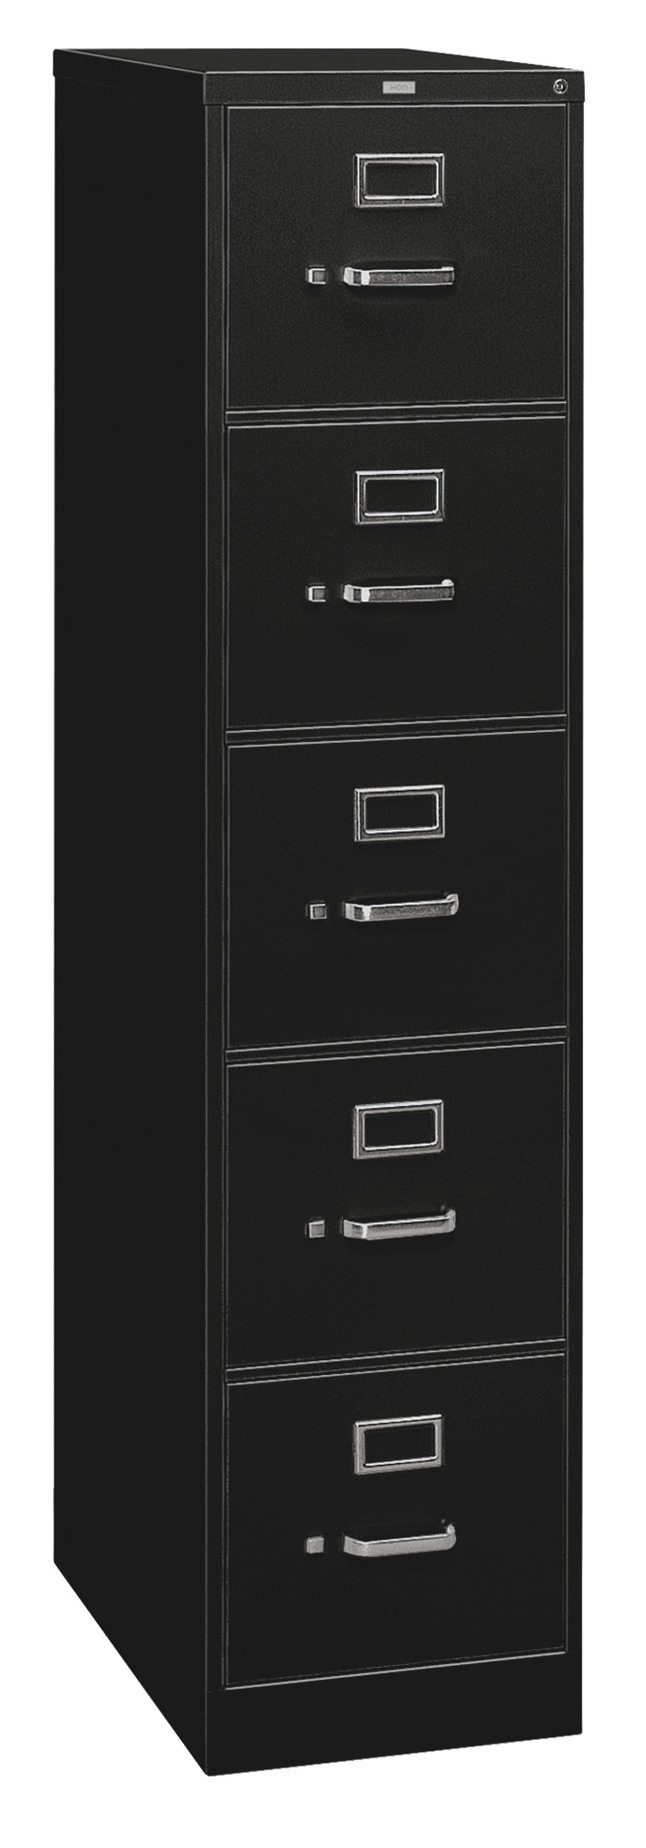 Filing Cabinets Supplies, Item Number 1061446